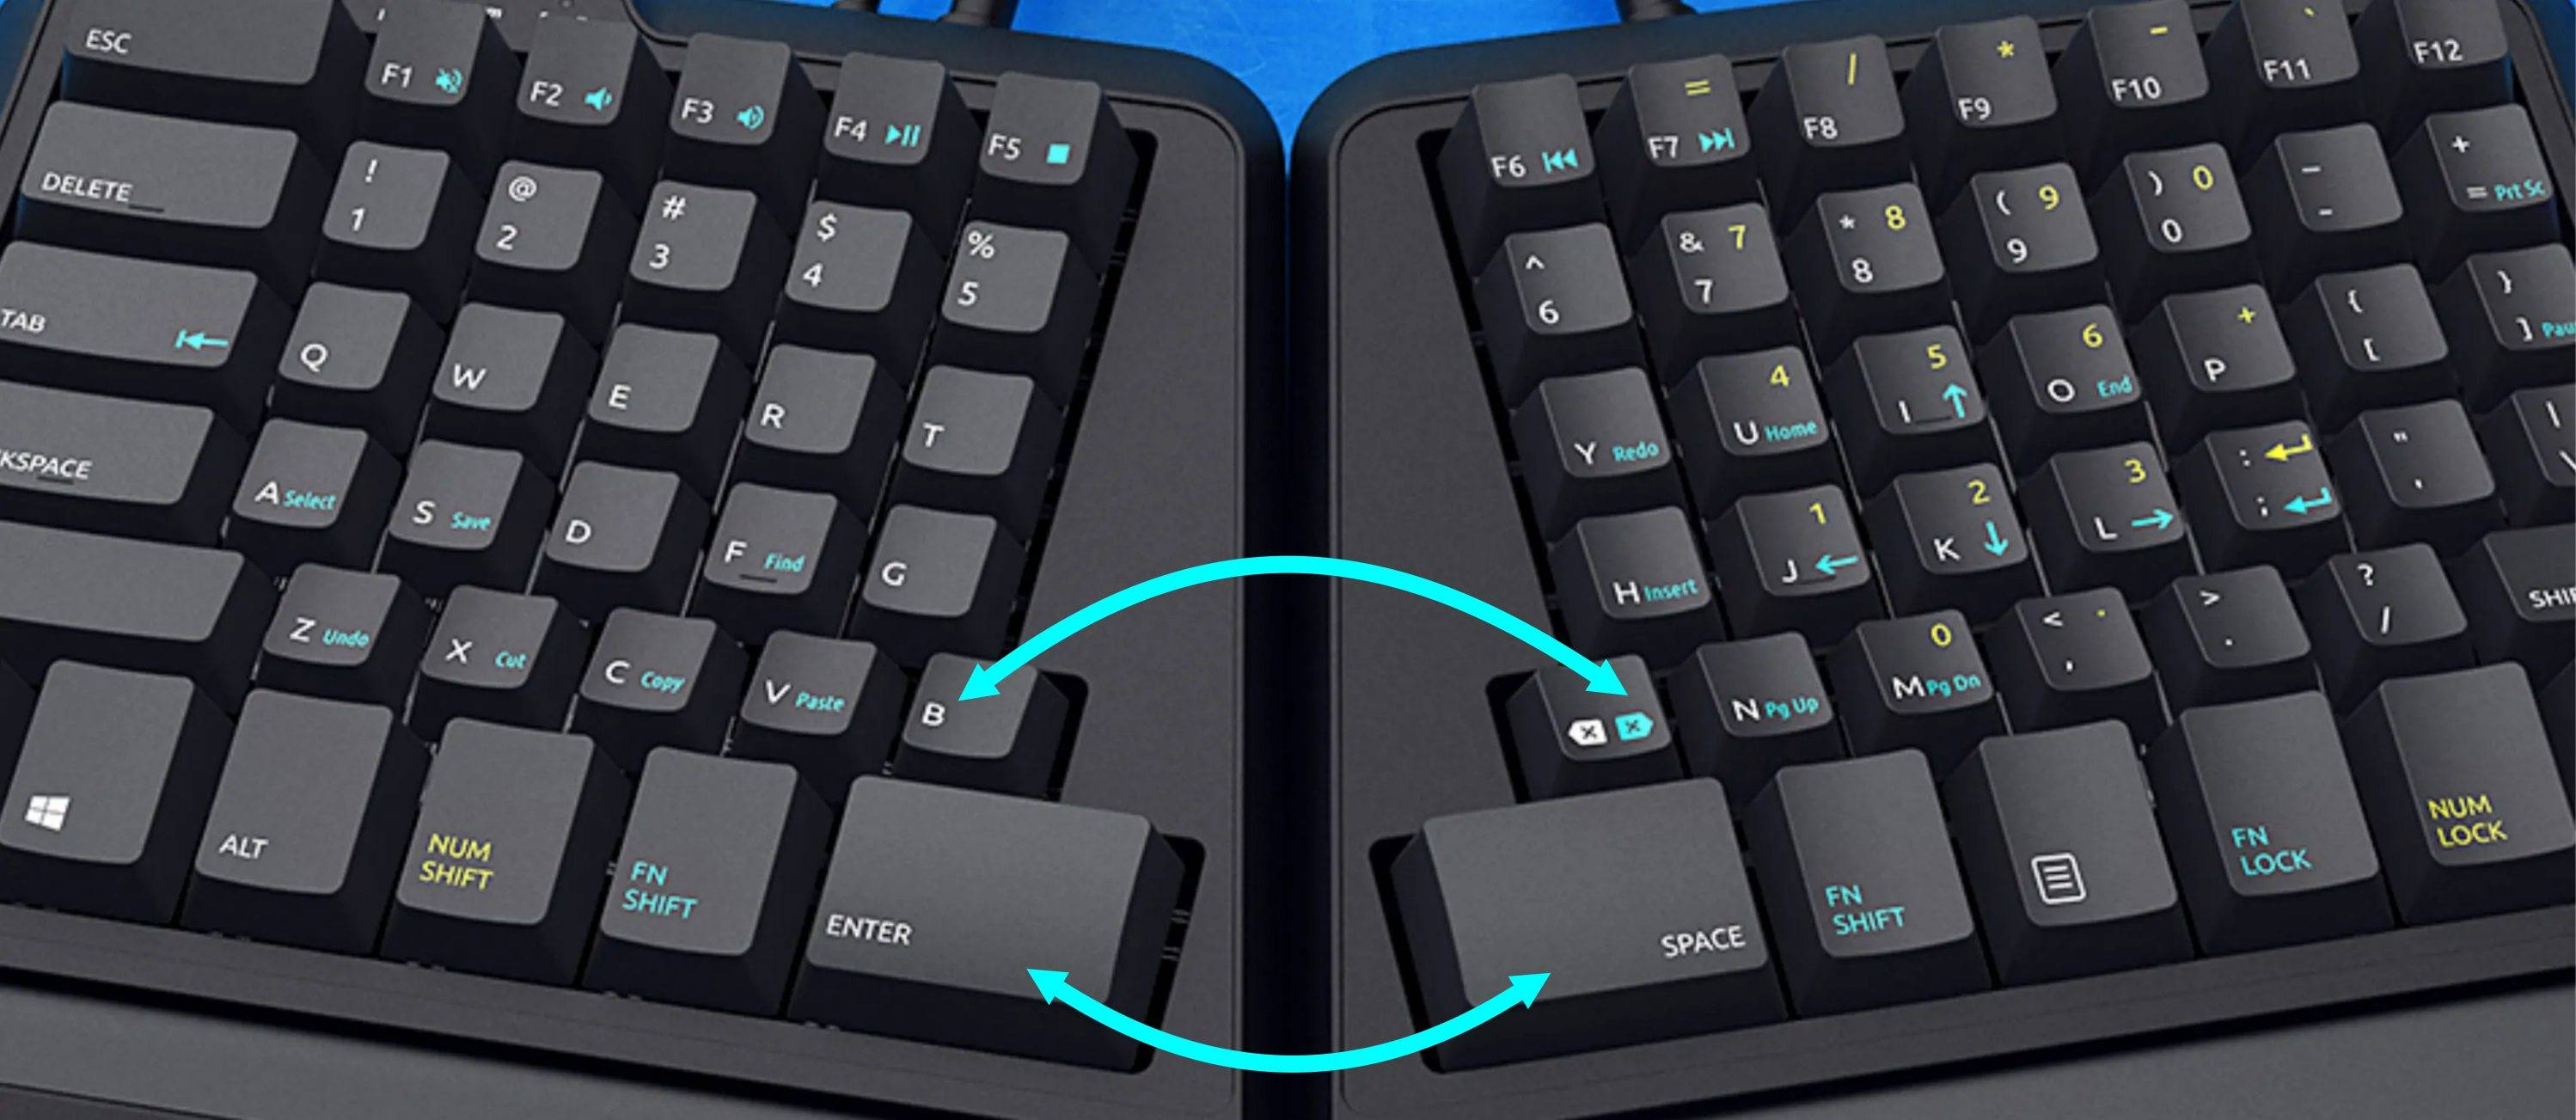 top split view of ergonomic keyboard